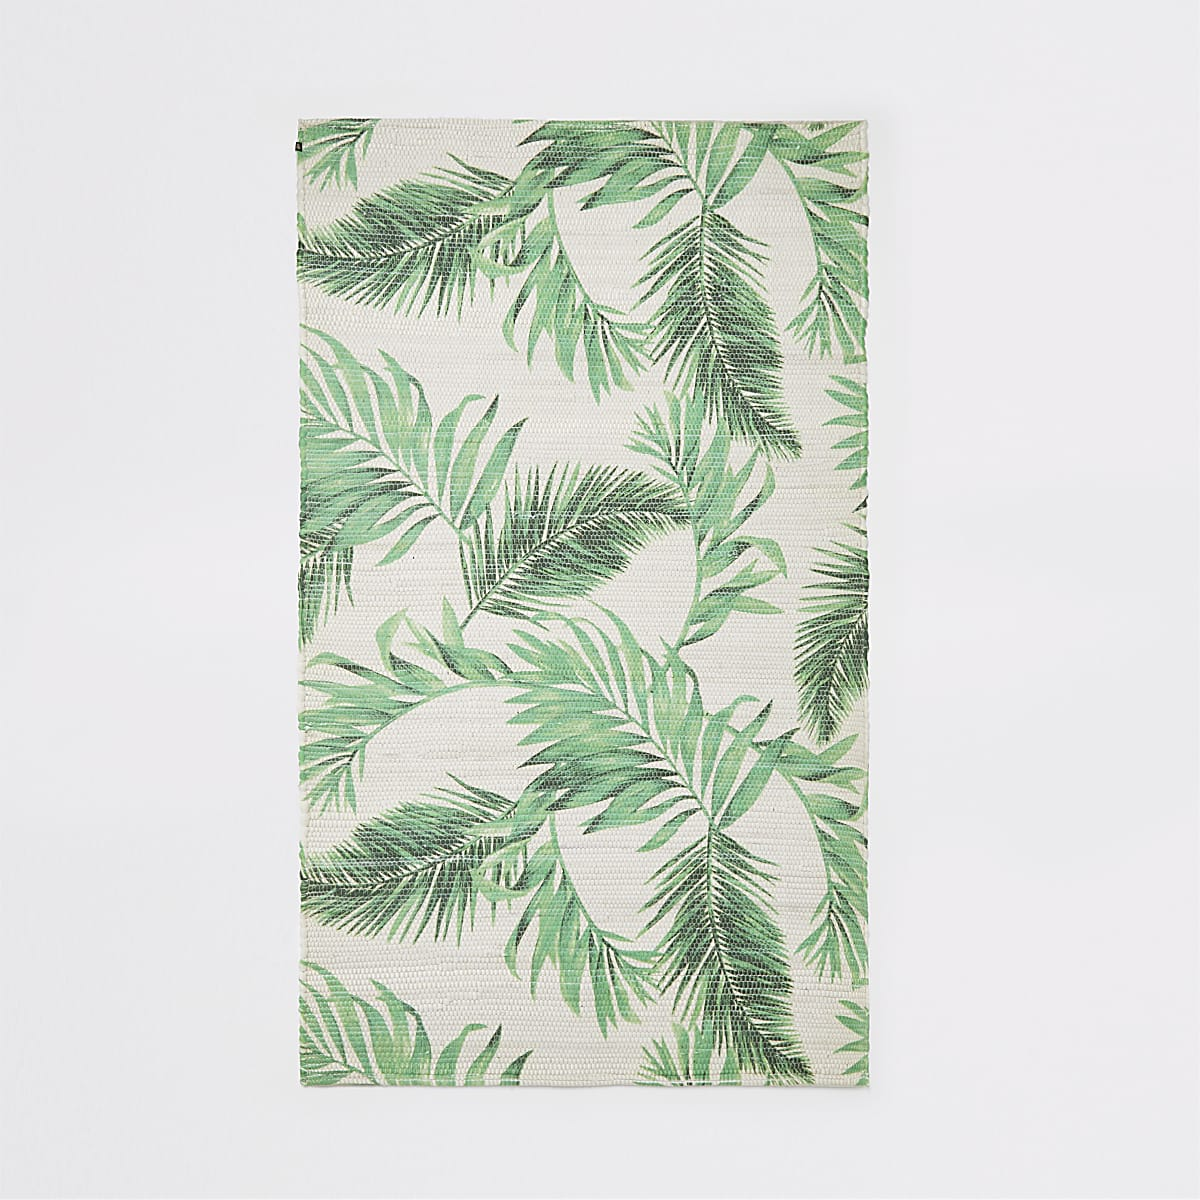 Handwoven recycled small green leaf print rug